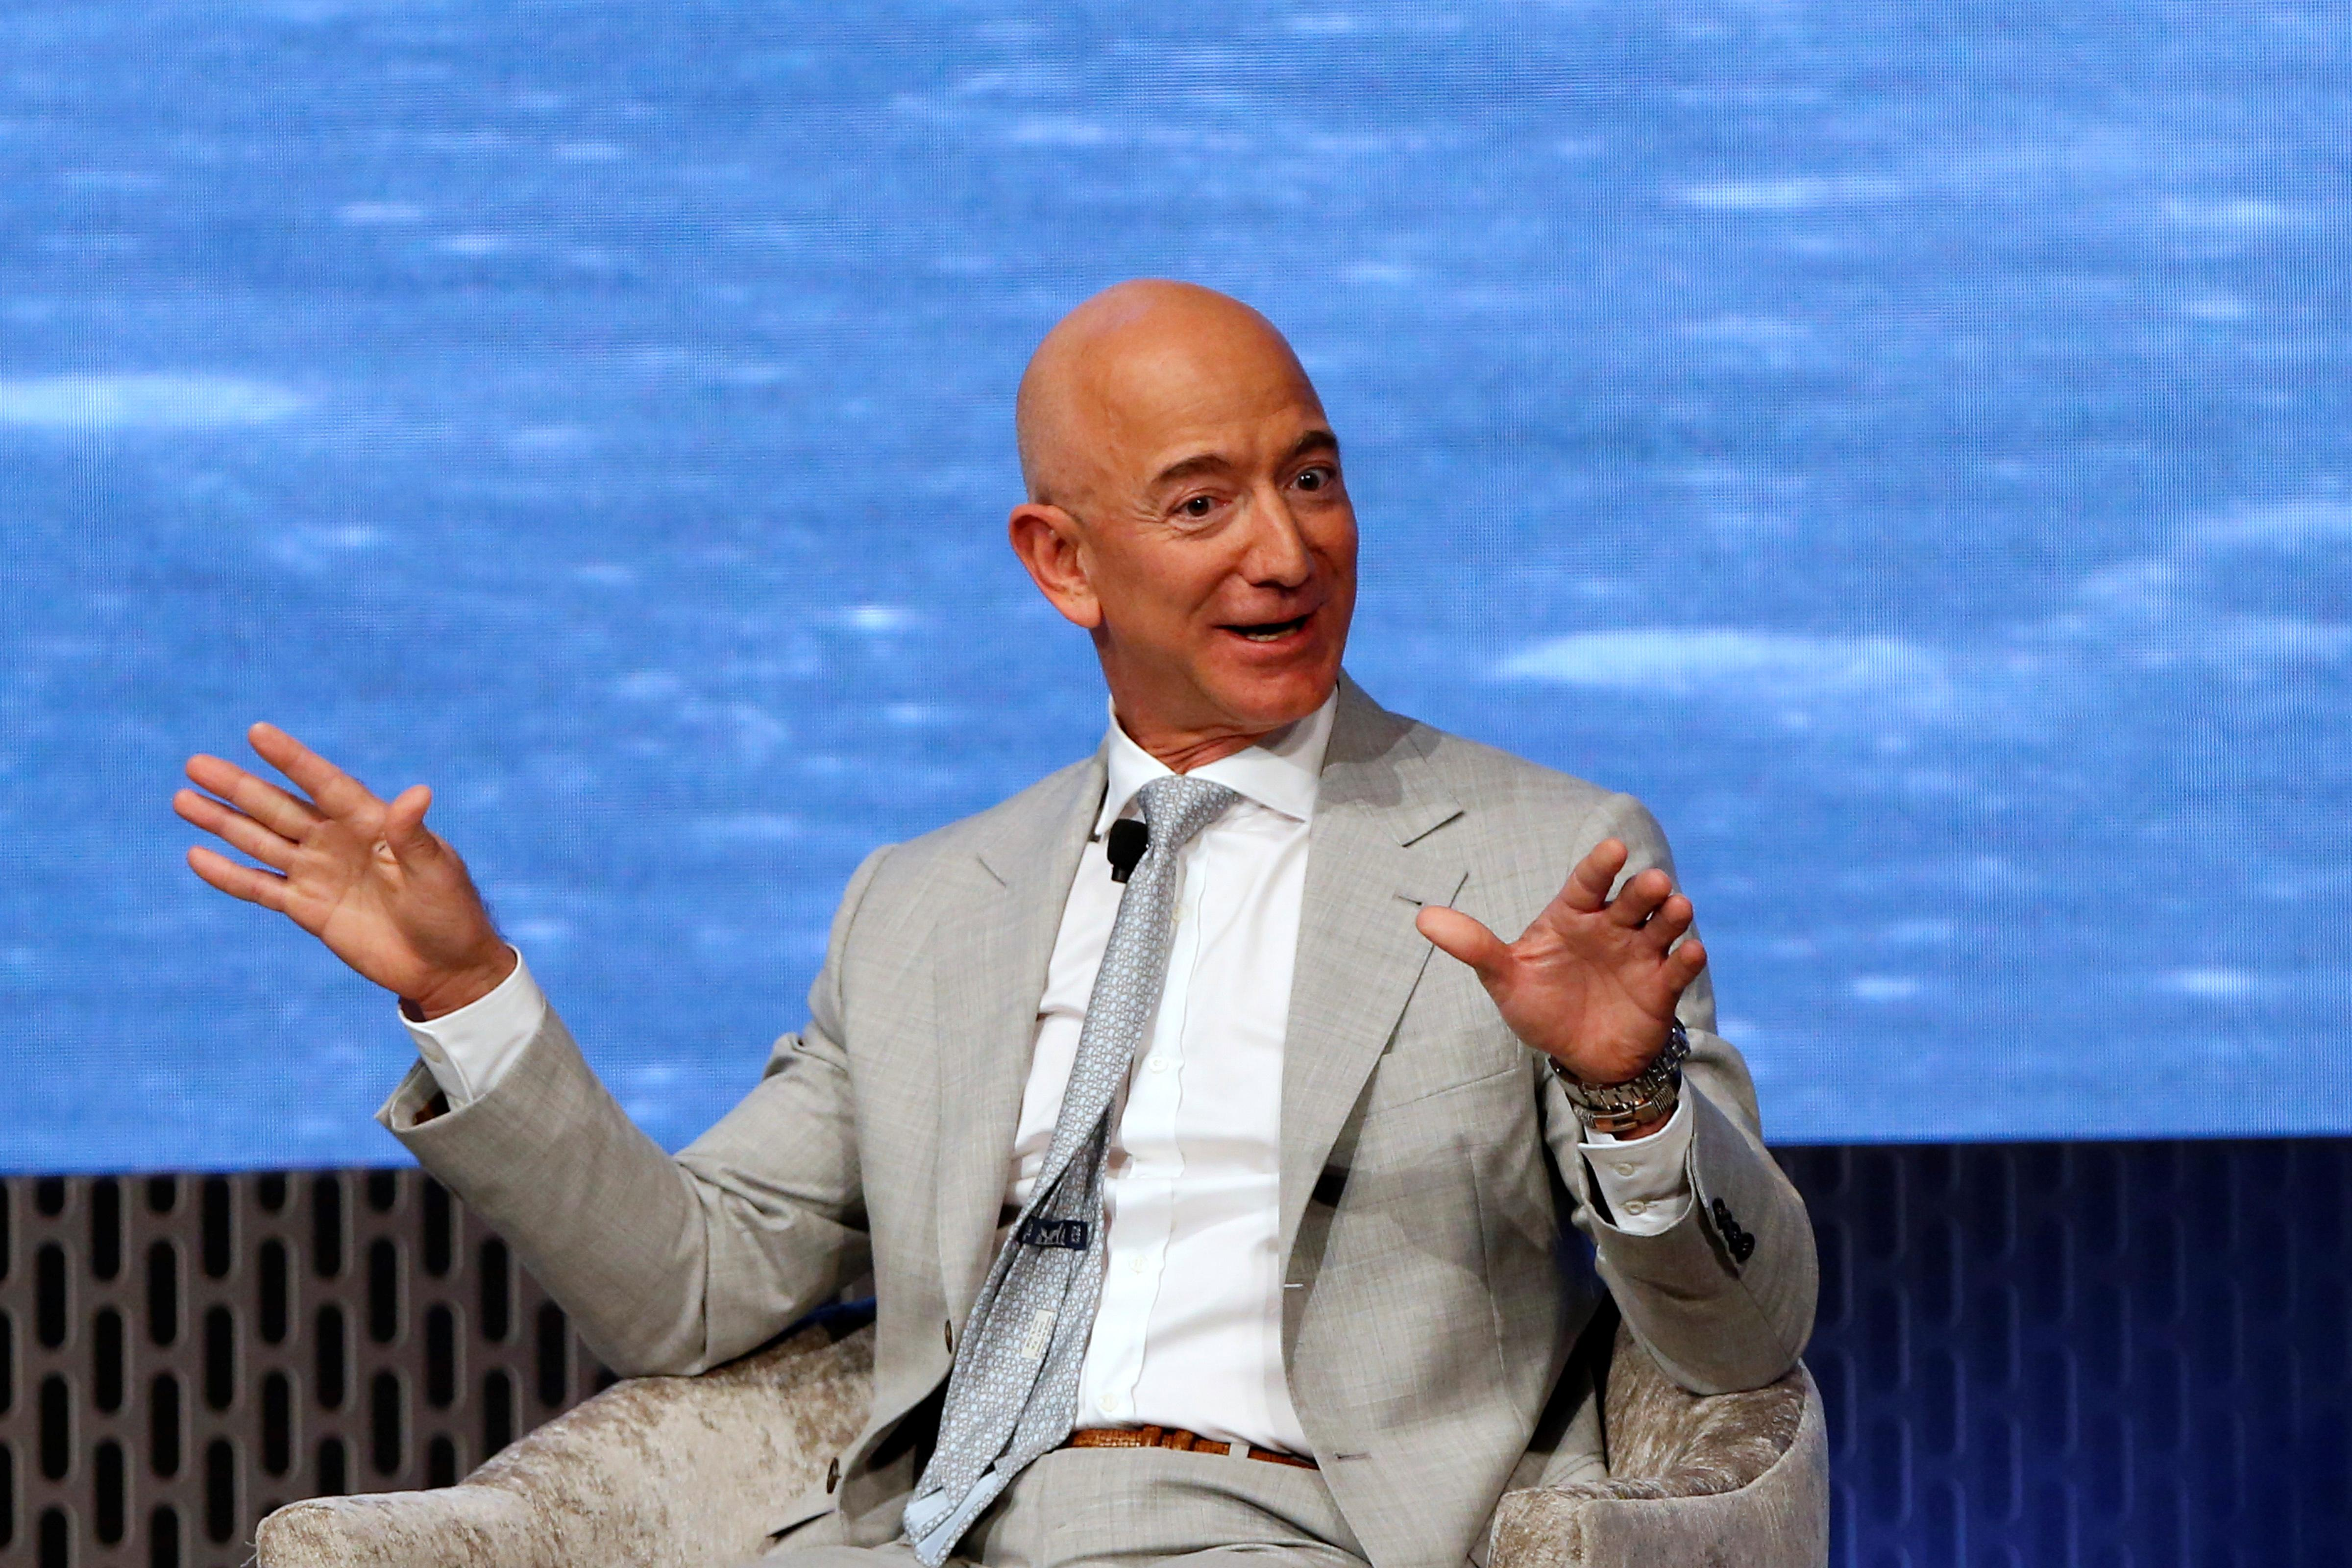 Jeff Bezos says Amazon wants to work more with the Pentagon